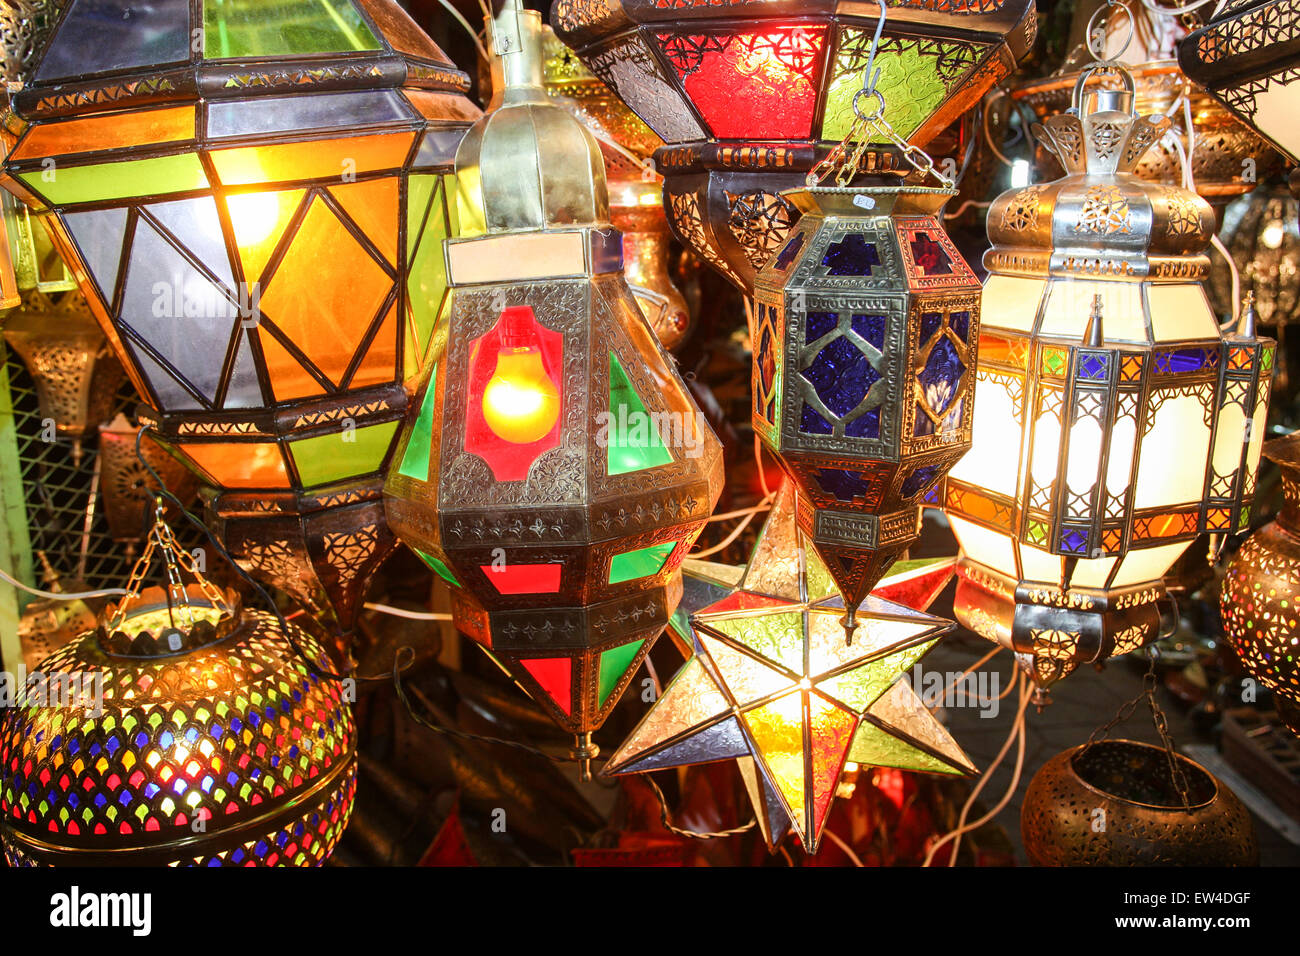 Colourful Moroccan Lights For Home Decor Lighting For Sale